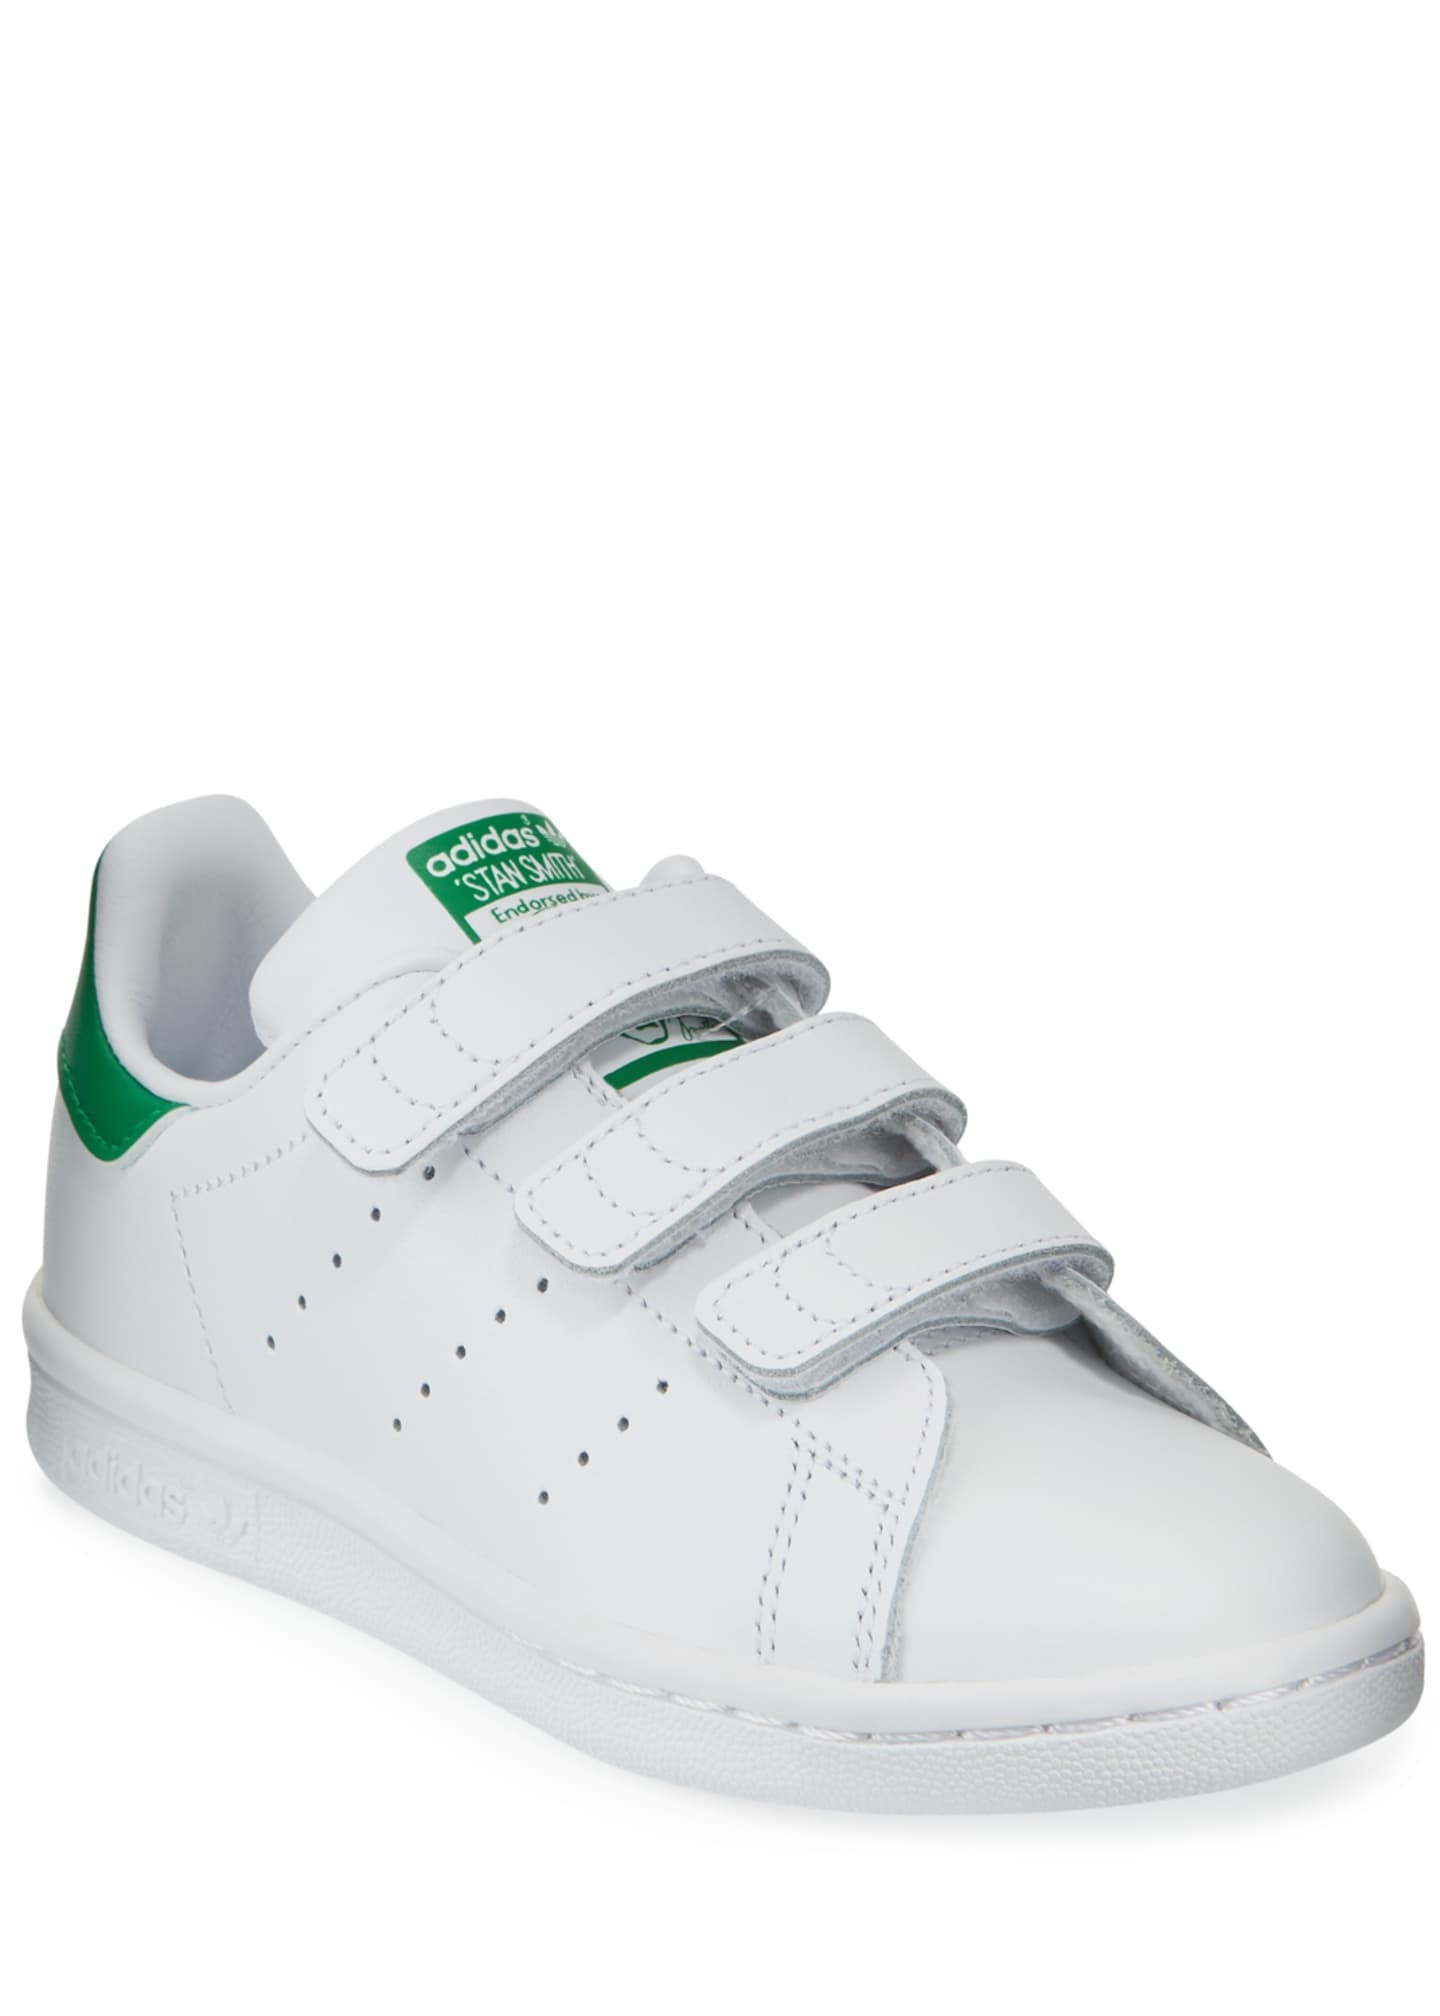 Stan Smith Sneakers, Toddlers/Kids